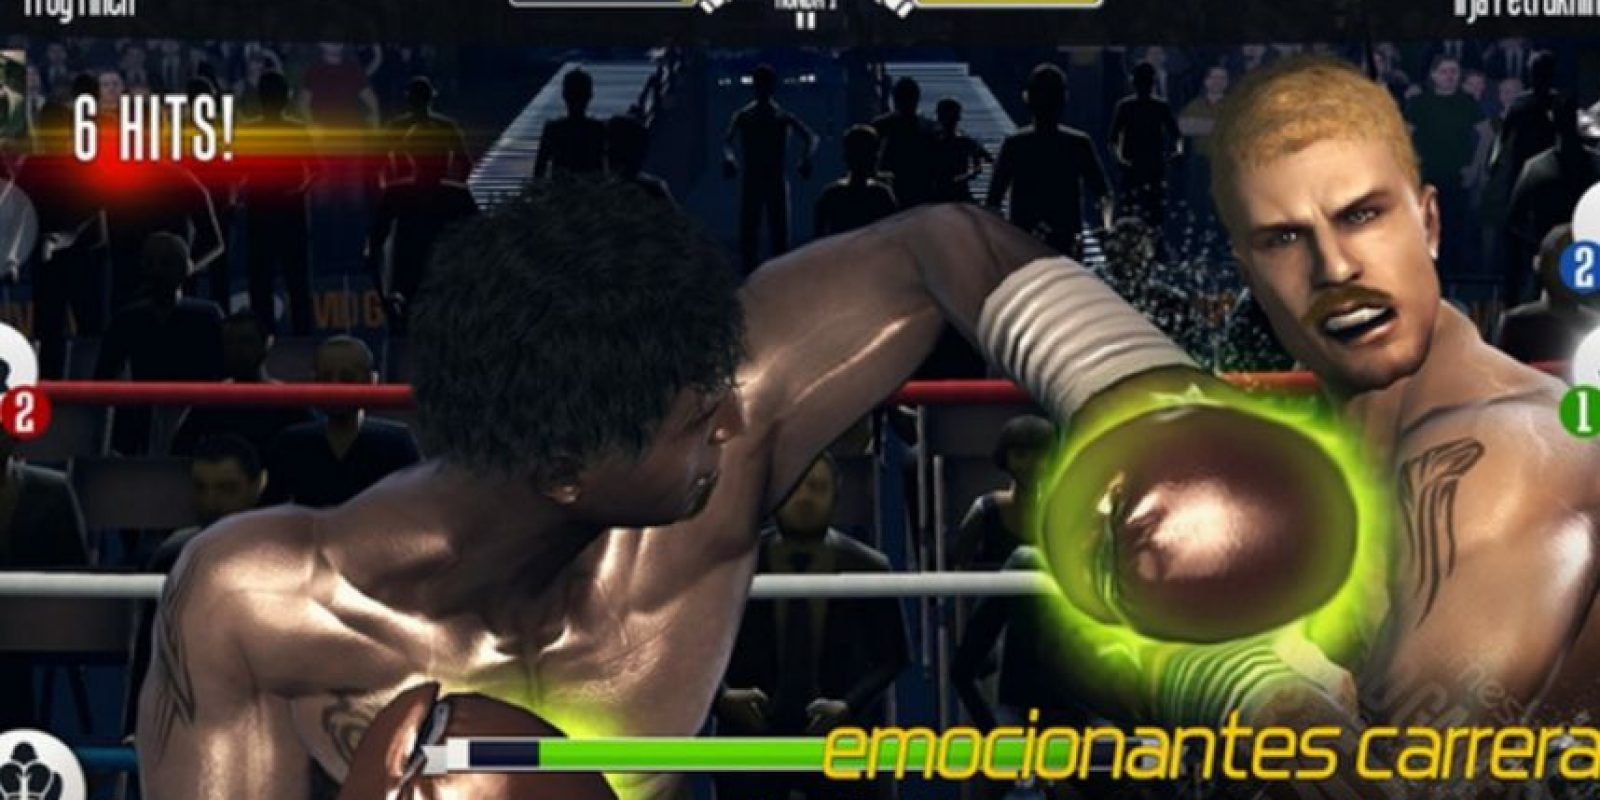 Real Boxing Foto: Vivid Games S.A.